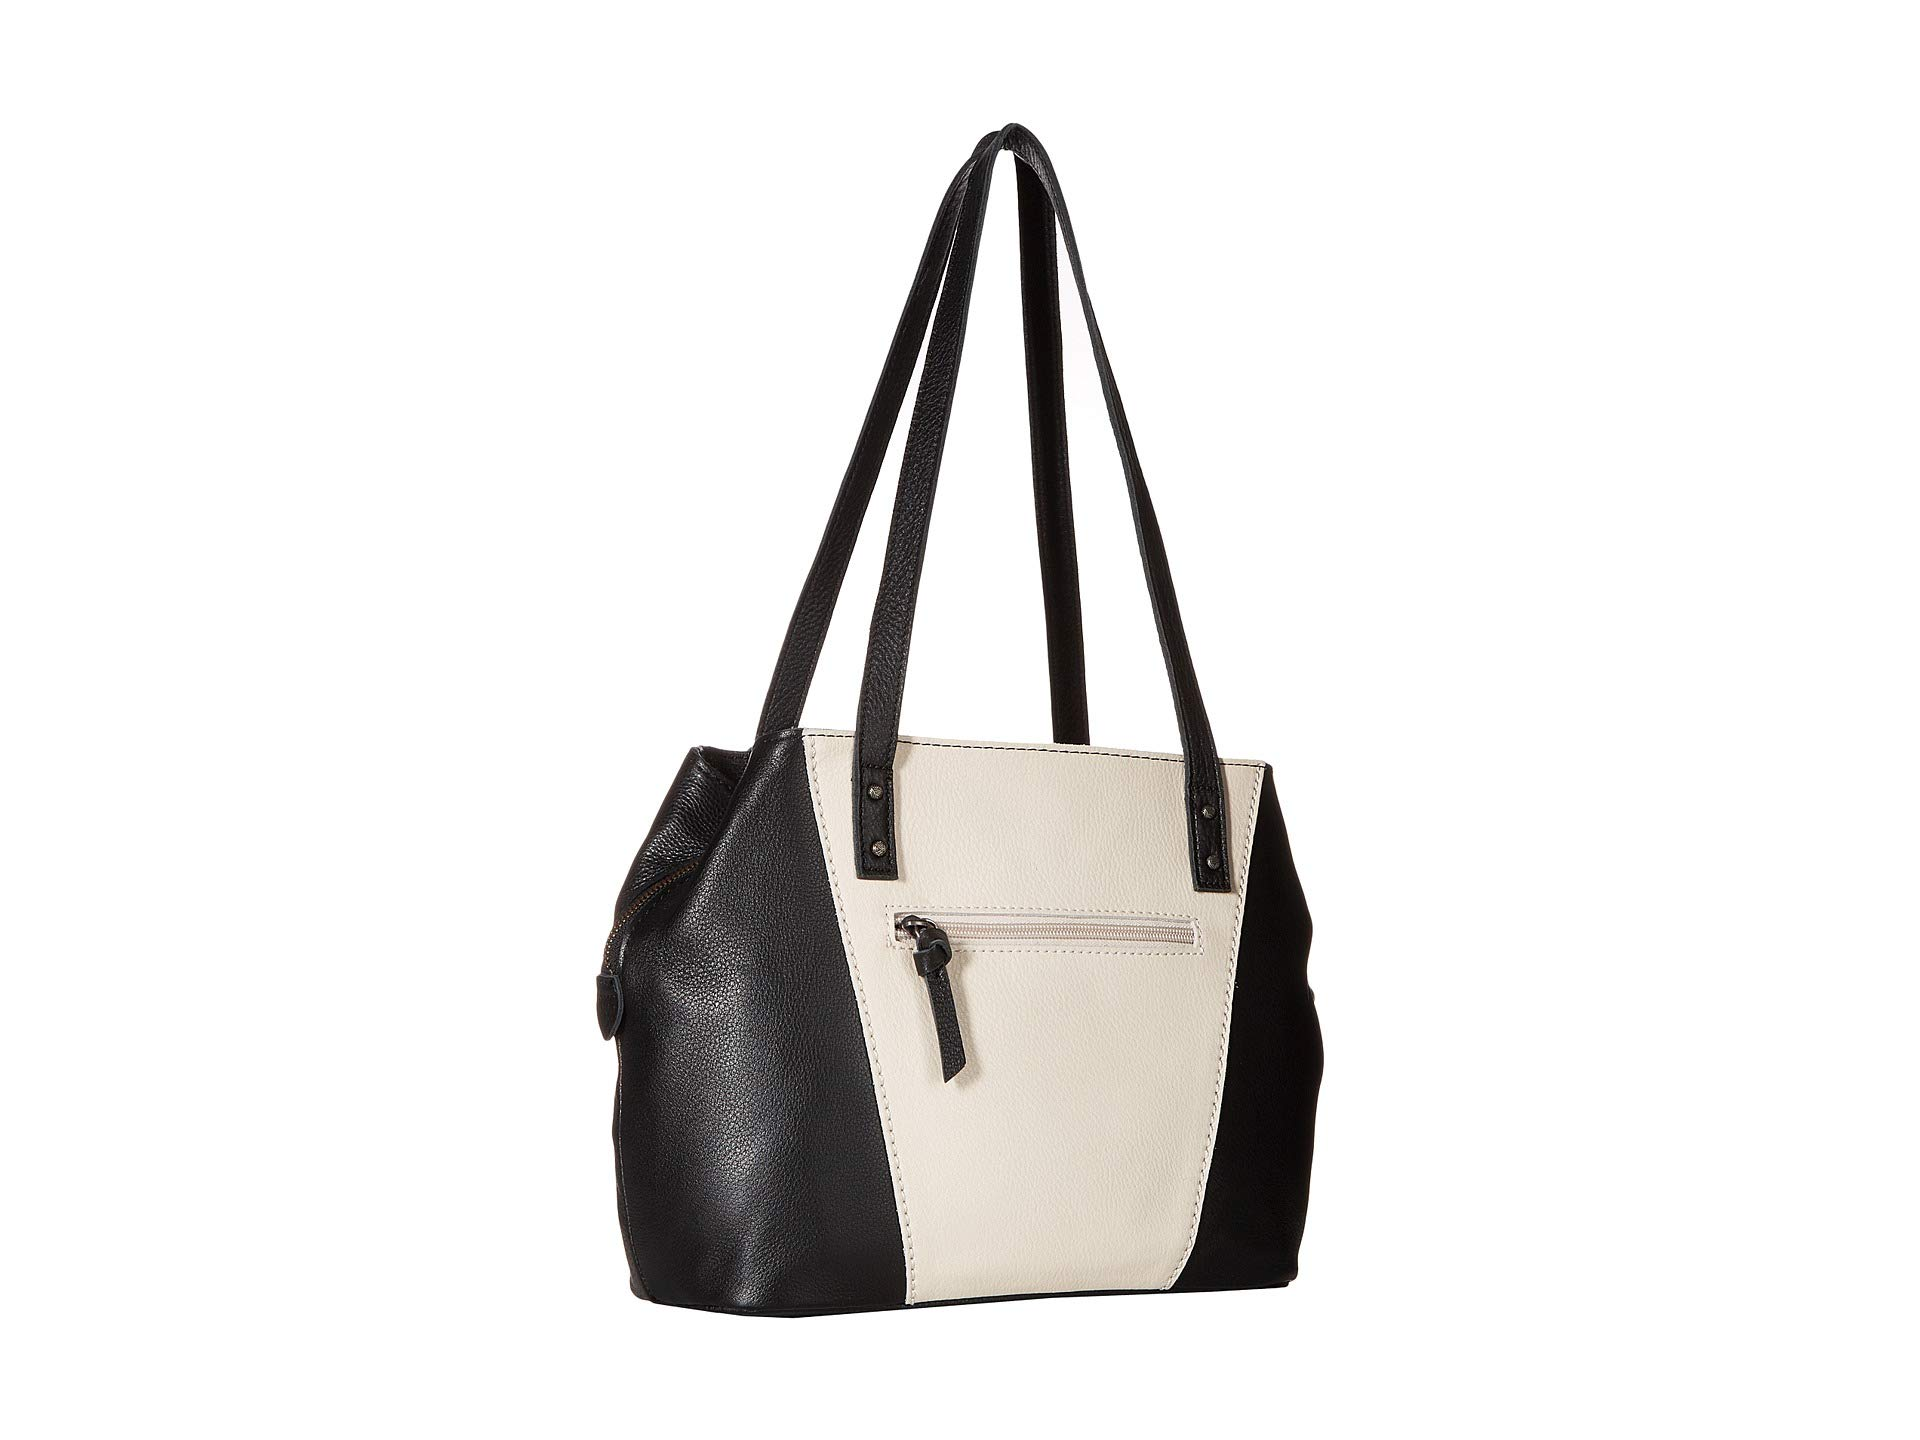 Paramount Black Satchel white Block Sak The 0qzwgg